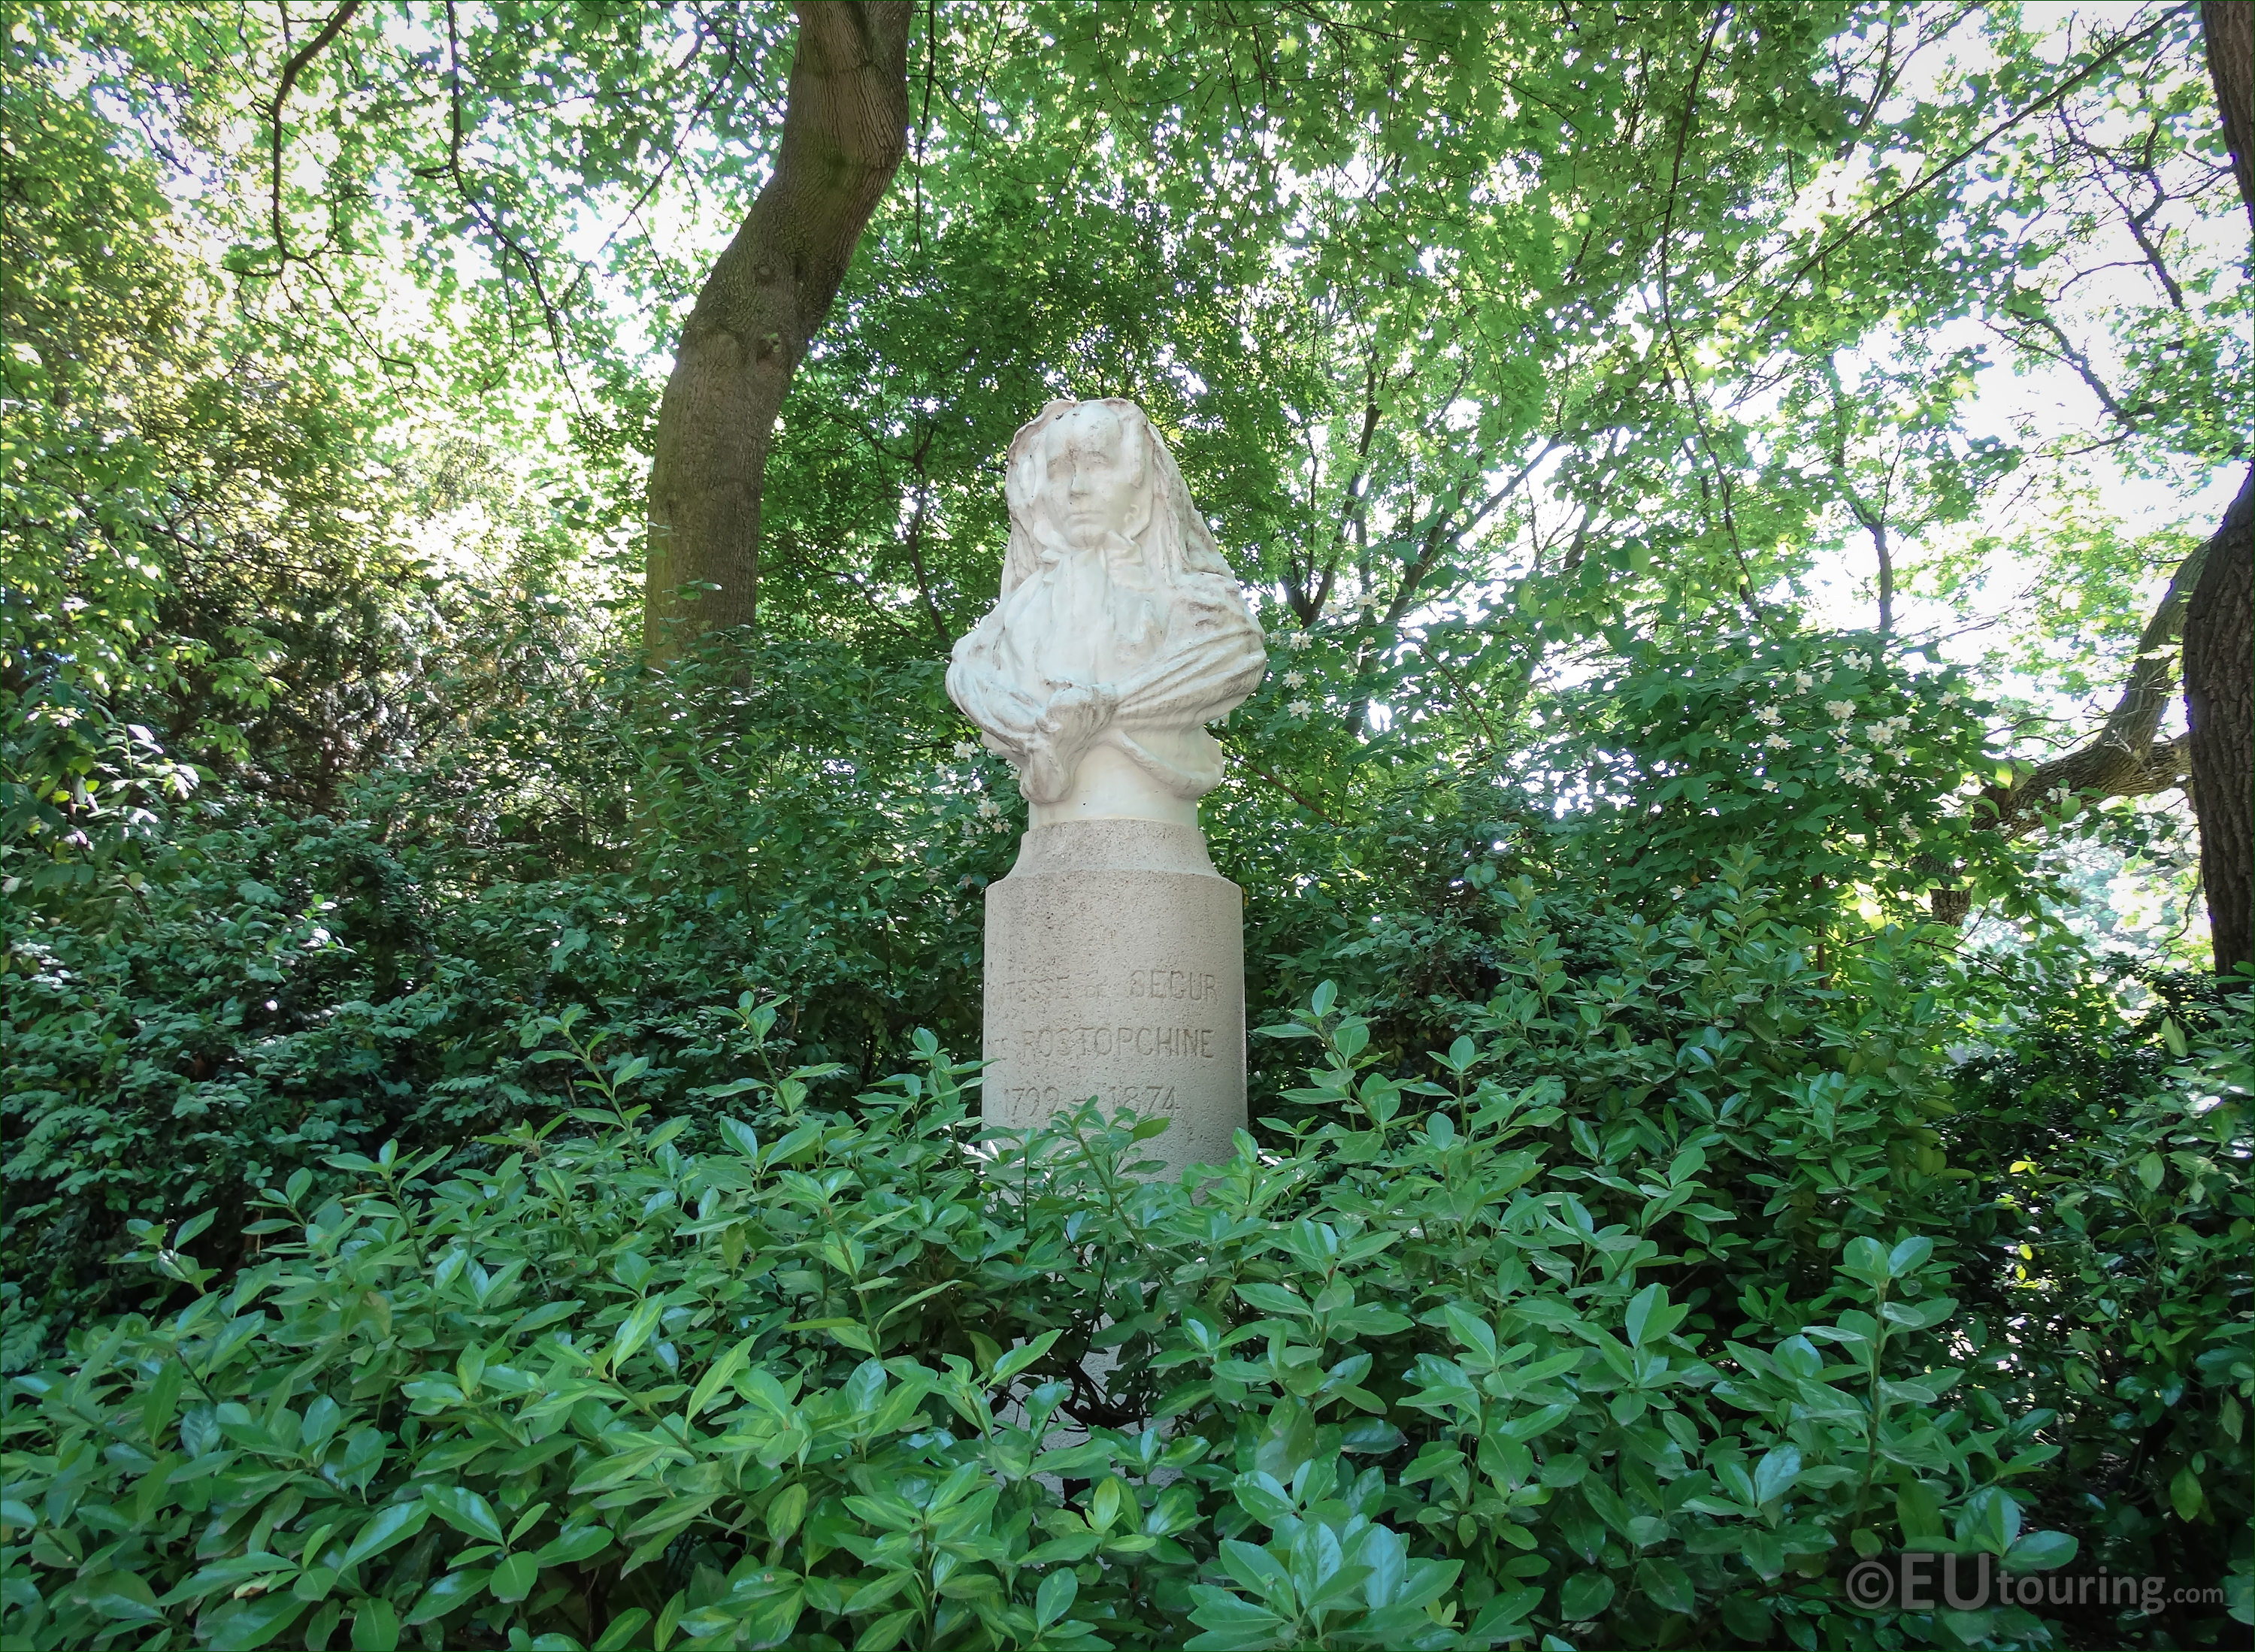 Photos of la comtesse de segur monument in luxembourg for Au jardin paris